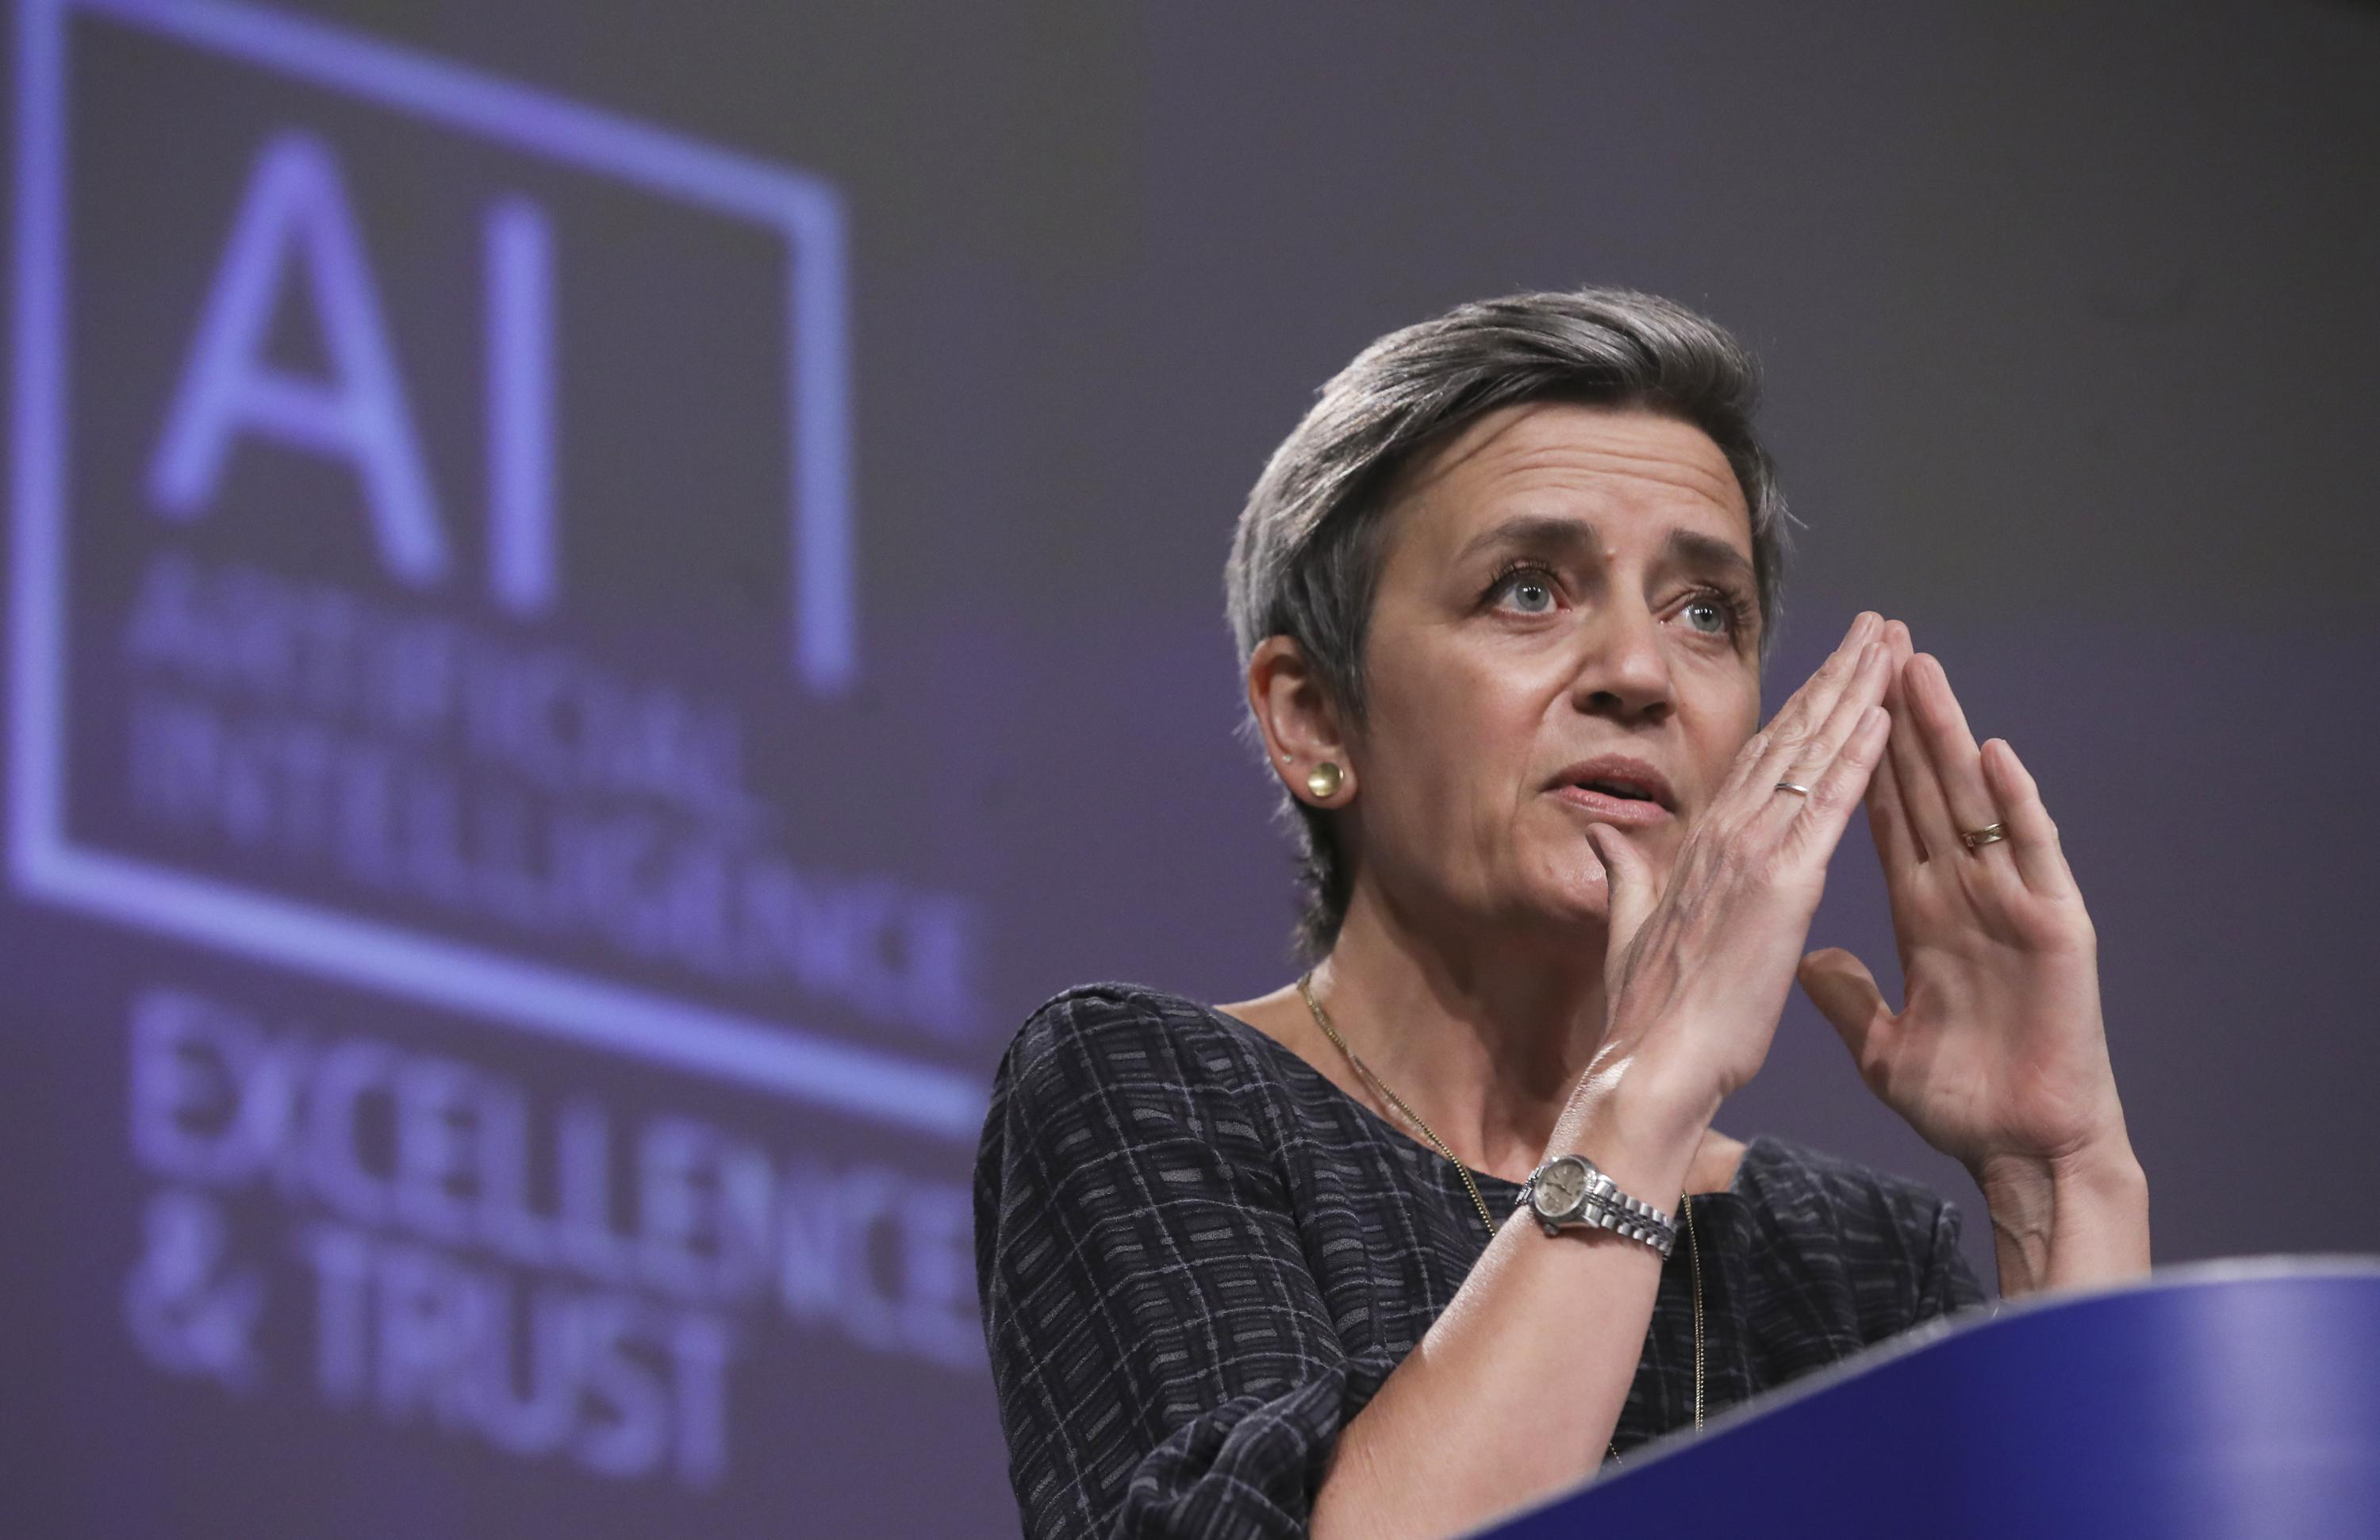 EU proposes rules for high-risk artificial intelligence uses